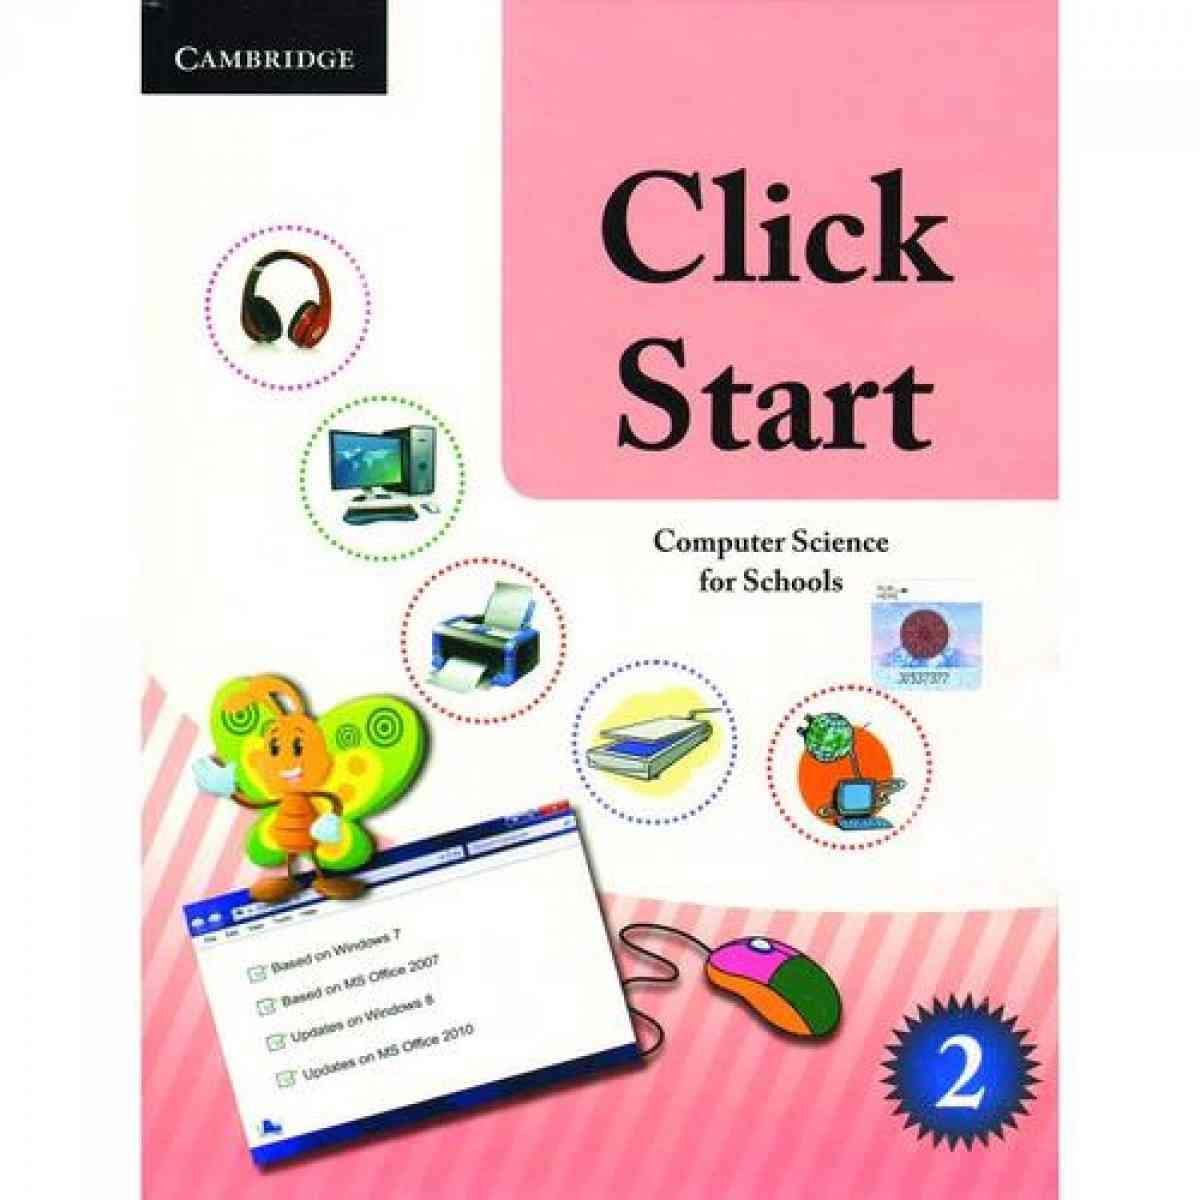 CAMBRIDGE UNIVERSITY PRESS Click Start: Computer Science For Schools Pakistan Edition Book 2